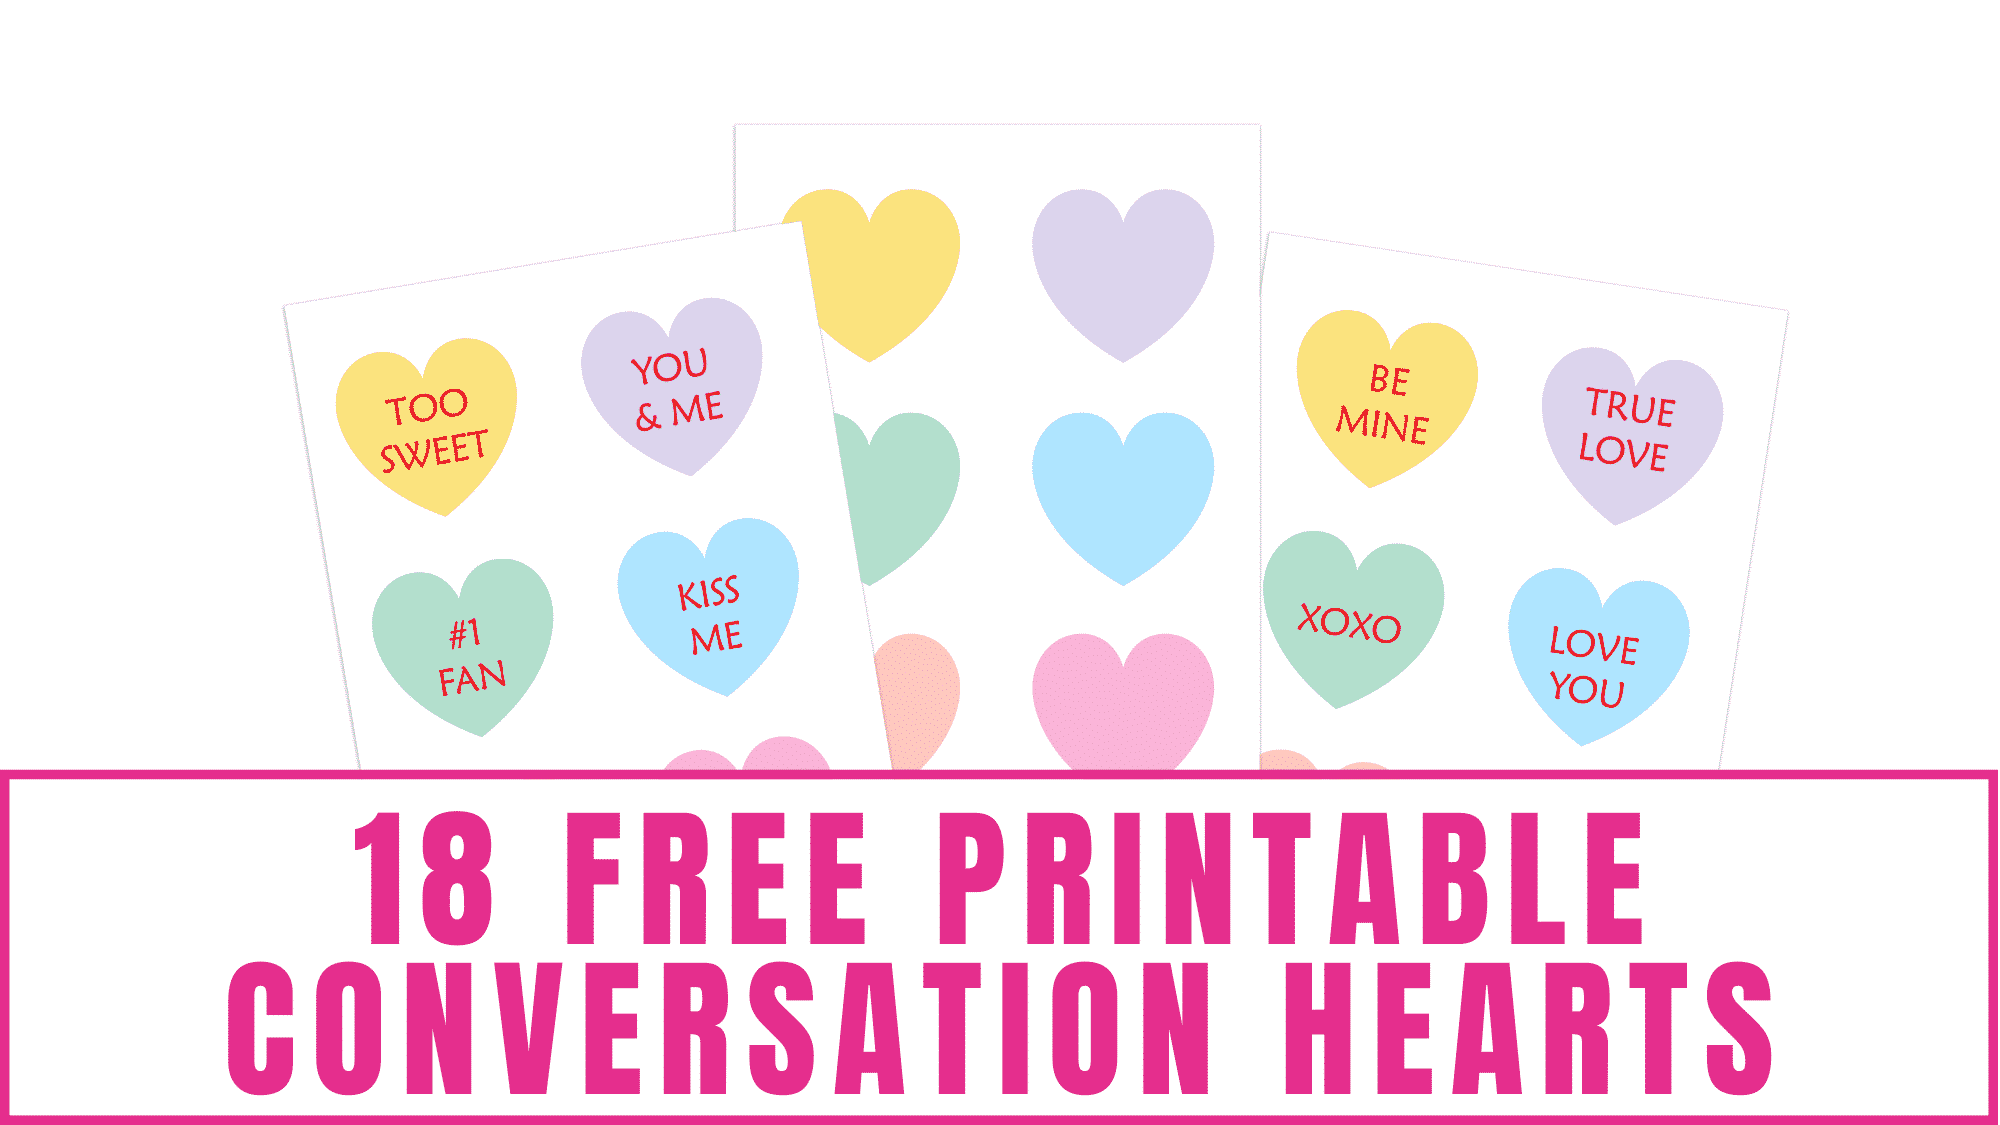 Three printables of free printable conversation hearts to help make your Valentine's Day special.